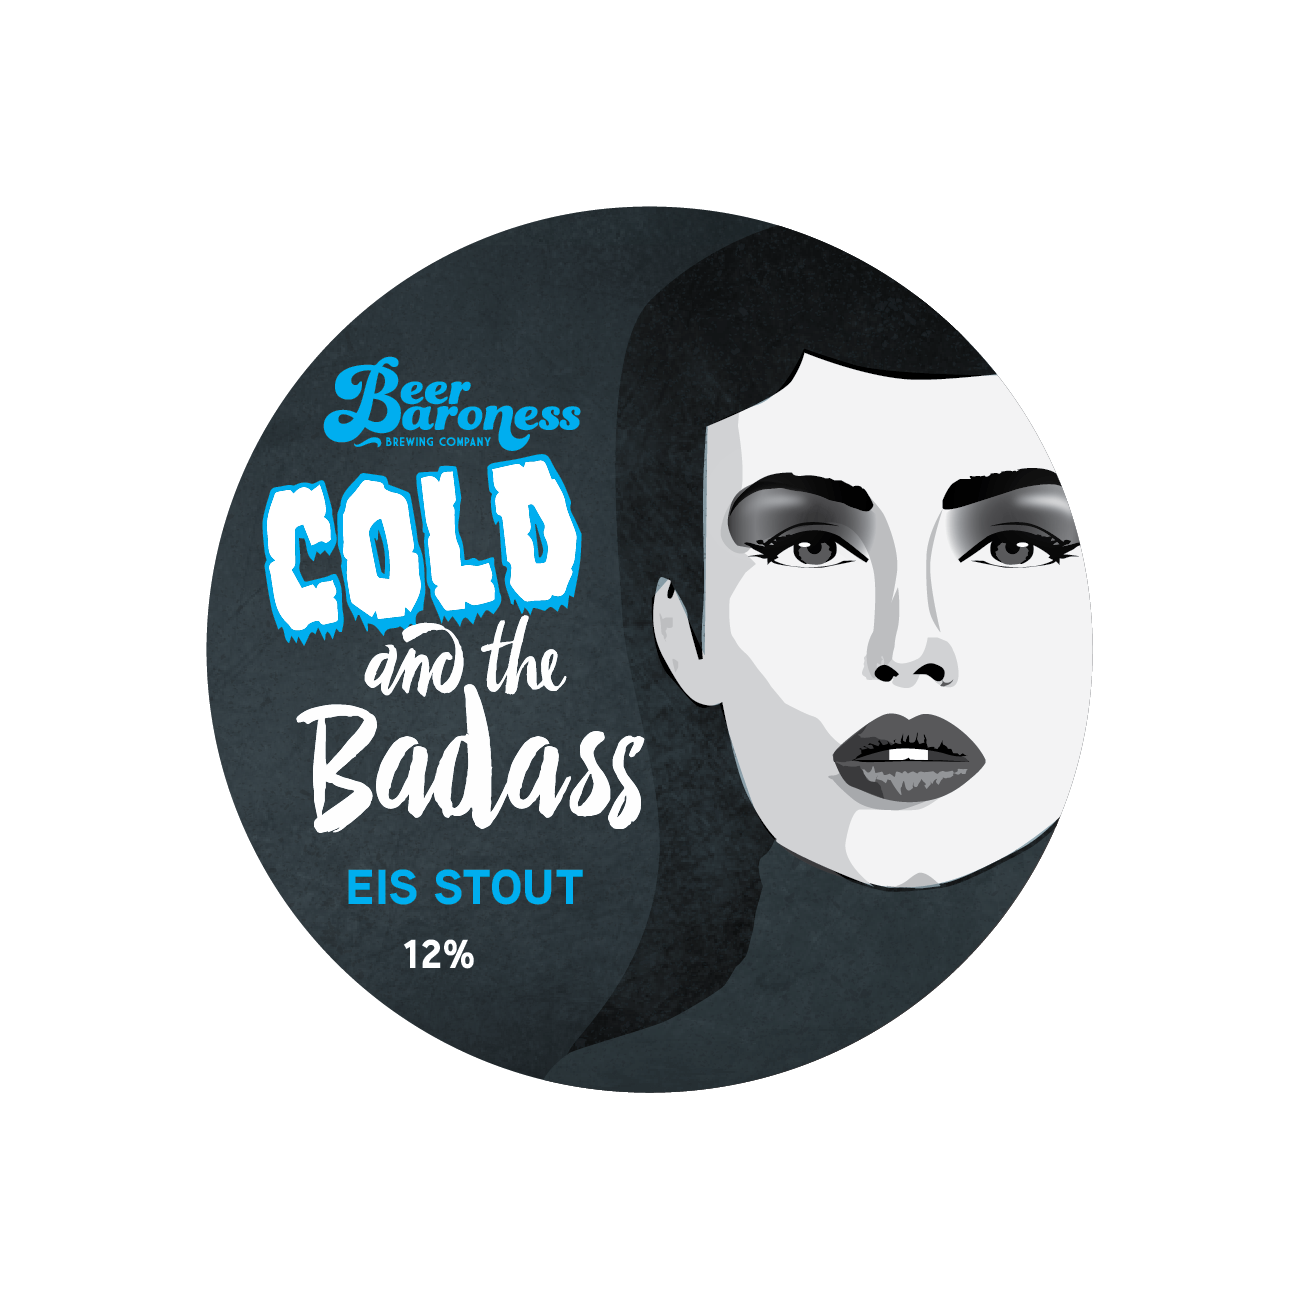 DD004928 Beer Baroness Cold and the Badass Tap Badge.png